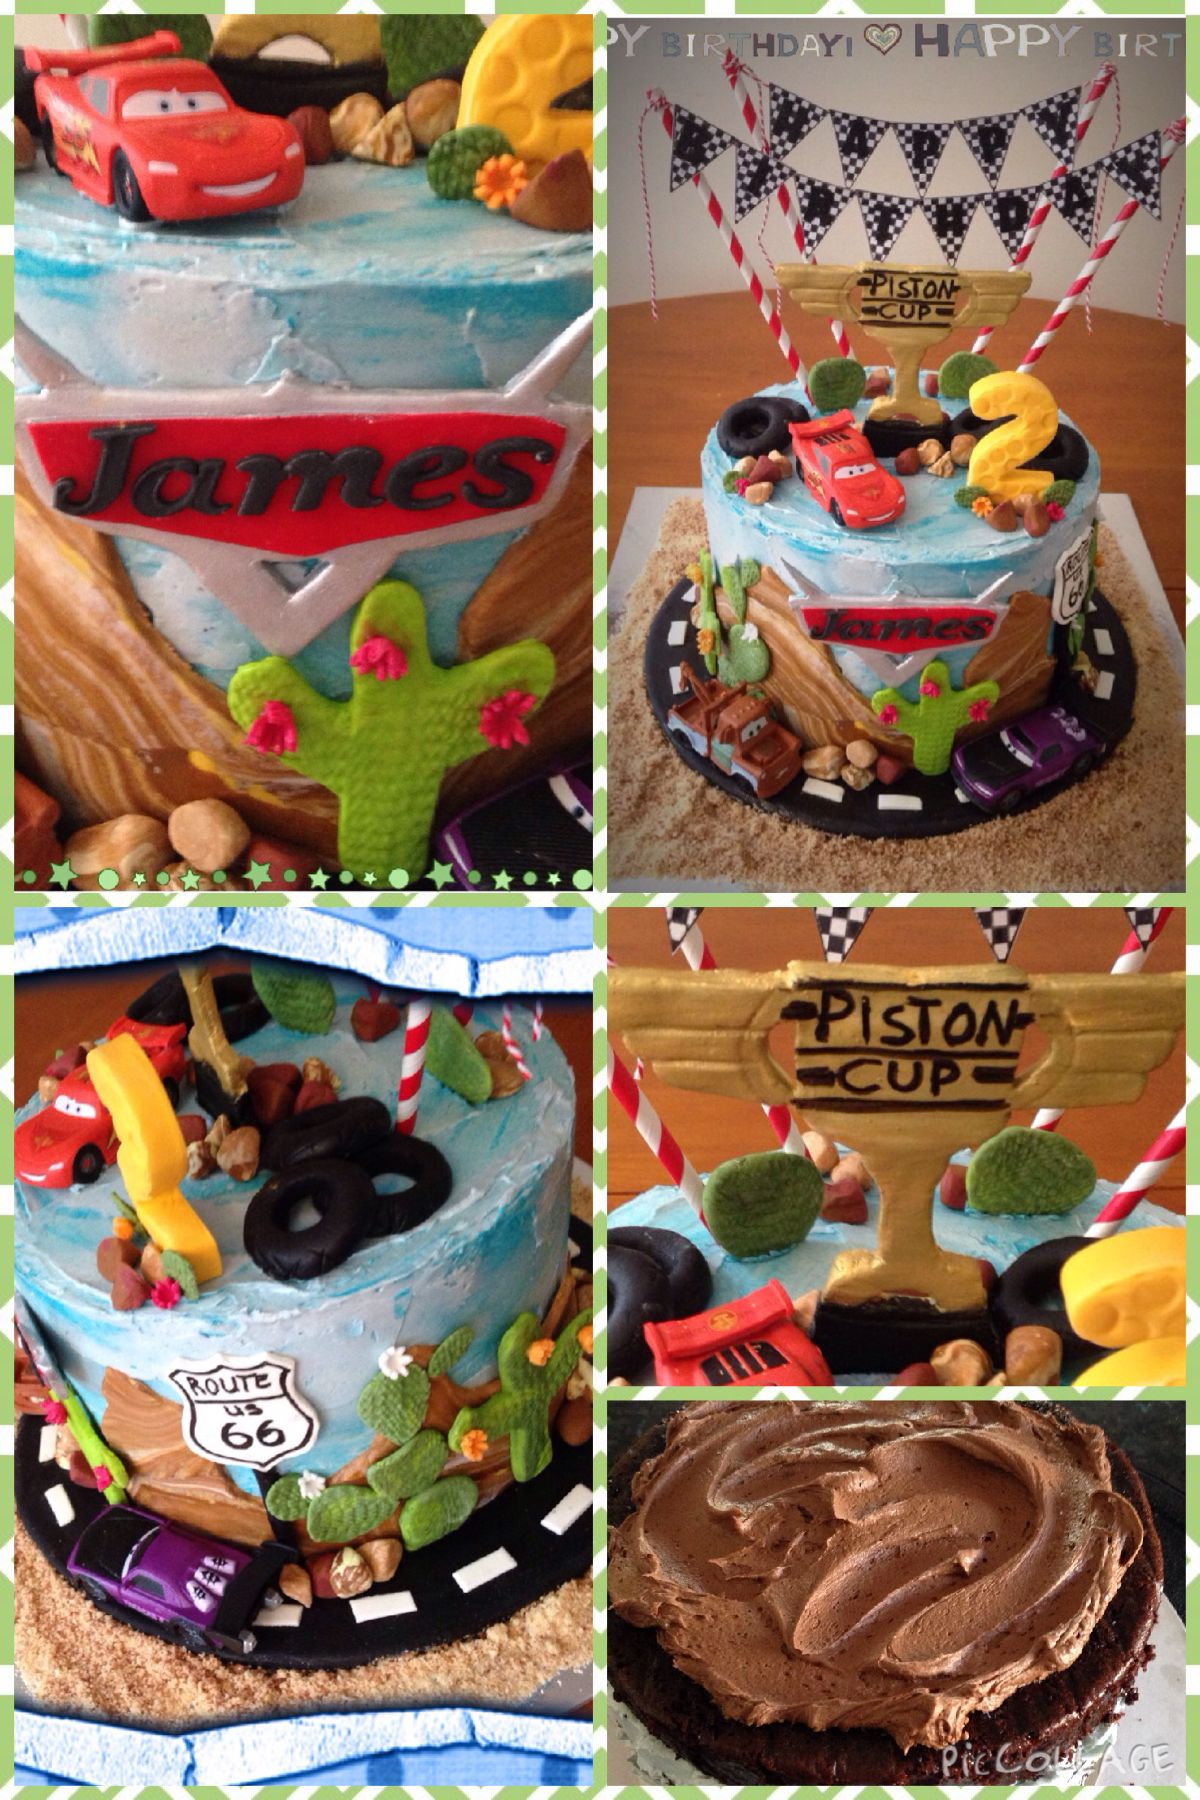 My Cars cake Chocolate cake with double chocolate fudge filling and